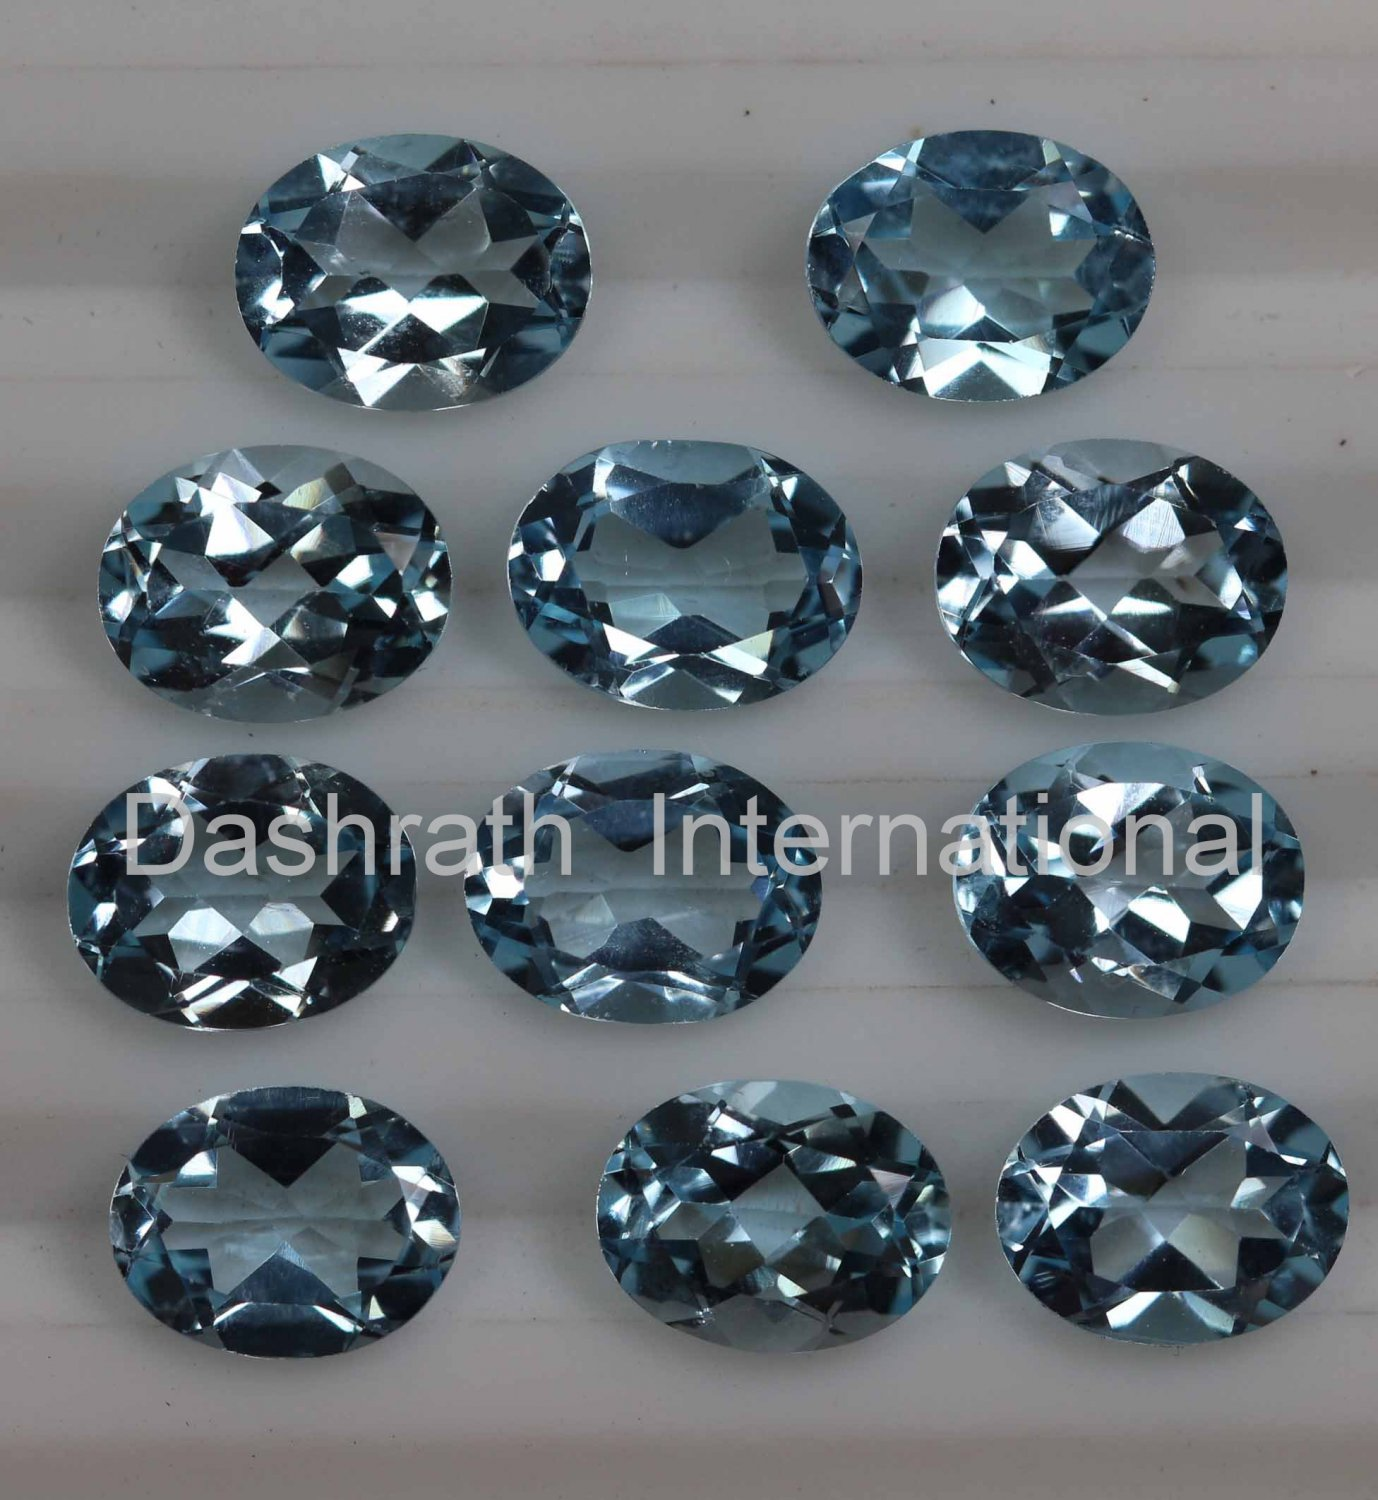 4x3mm Natural Sky Blue Topaz Faceted Cut Oval  10 Pieces Lot Blue Color  Top Quality Loose Gemstone